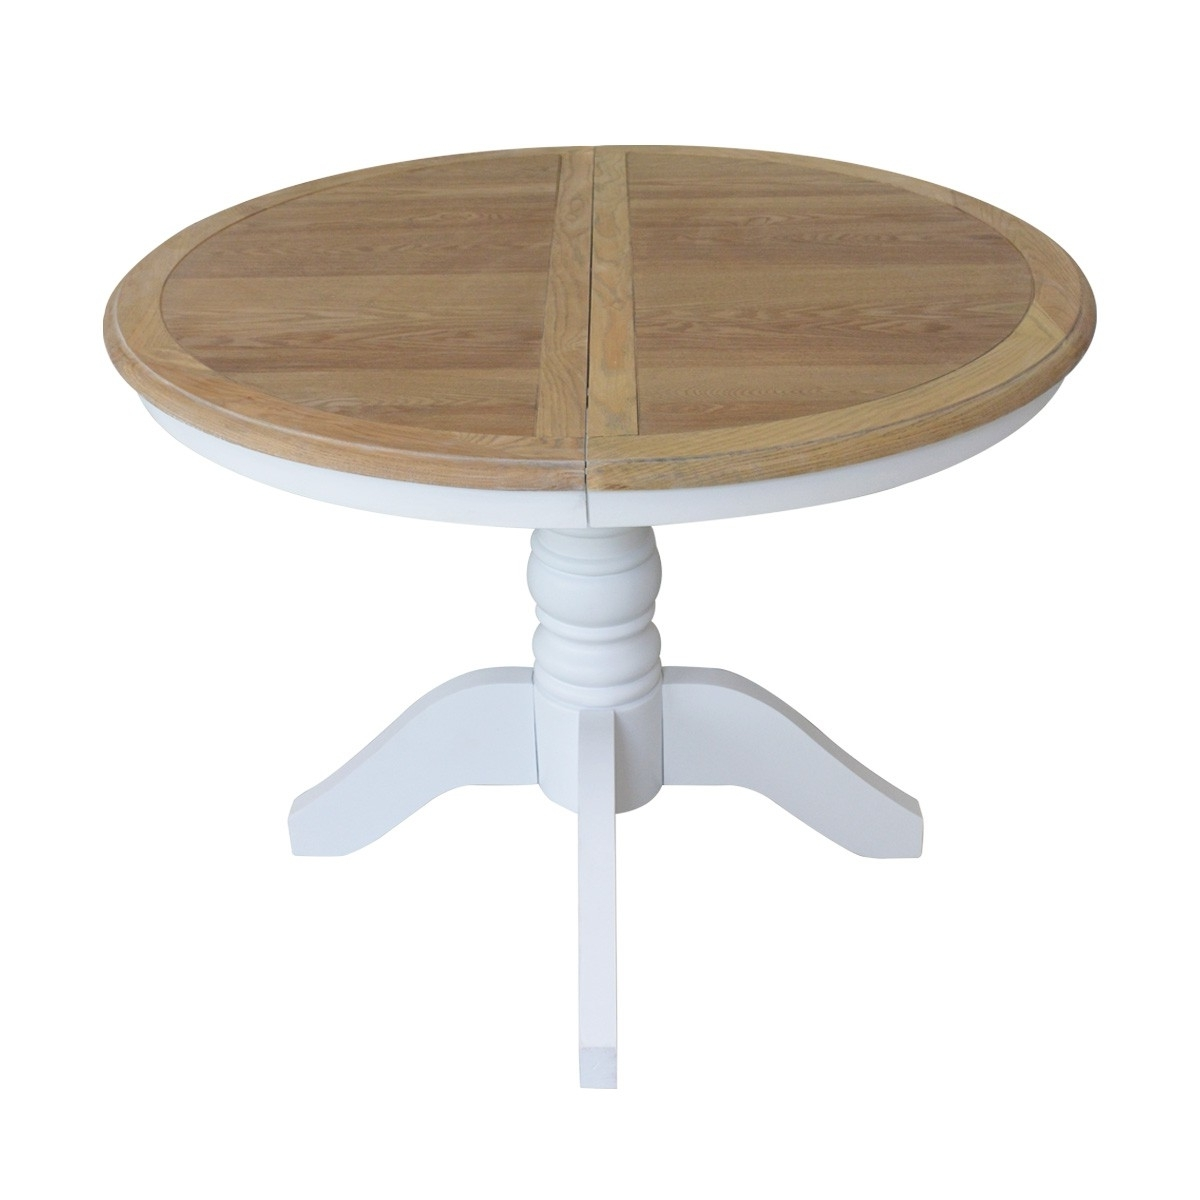 French Provincial Classic White Extendable Round Dining Table With Regarding Newest Extendable Round Dining Tables (View 12 of 25)